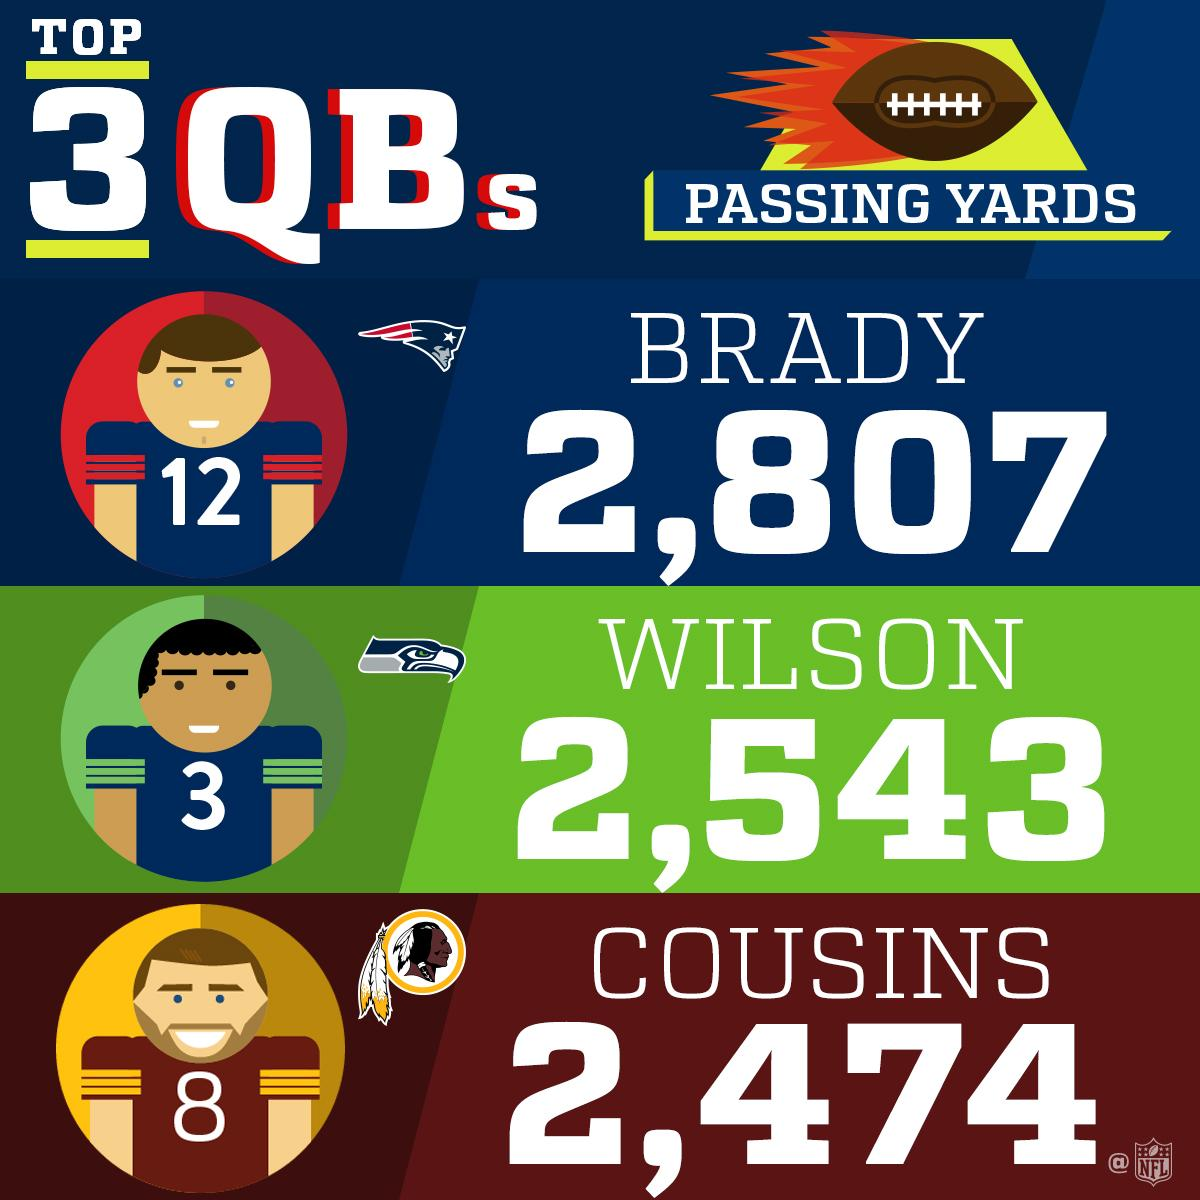 2017 Passing Yards Leaders! (Through Week 10) https://t.co/UdSv5IeGVm